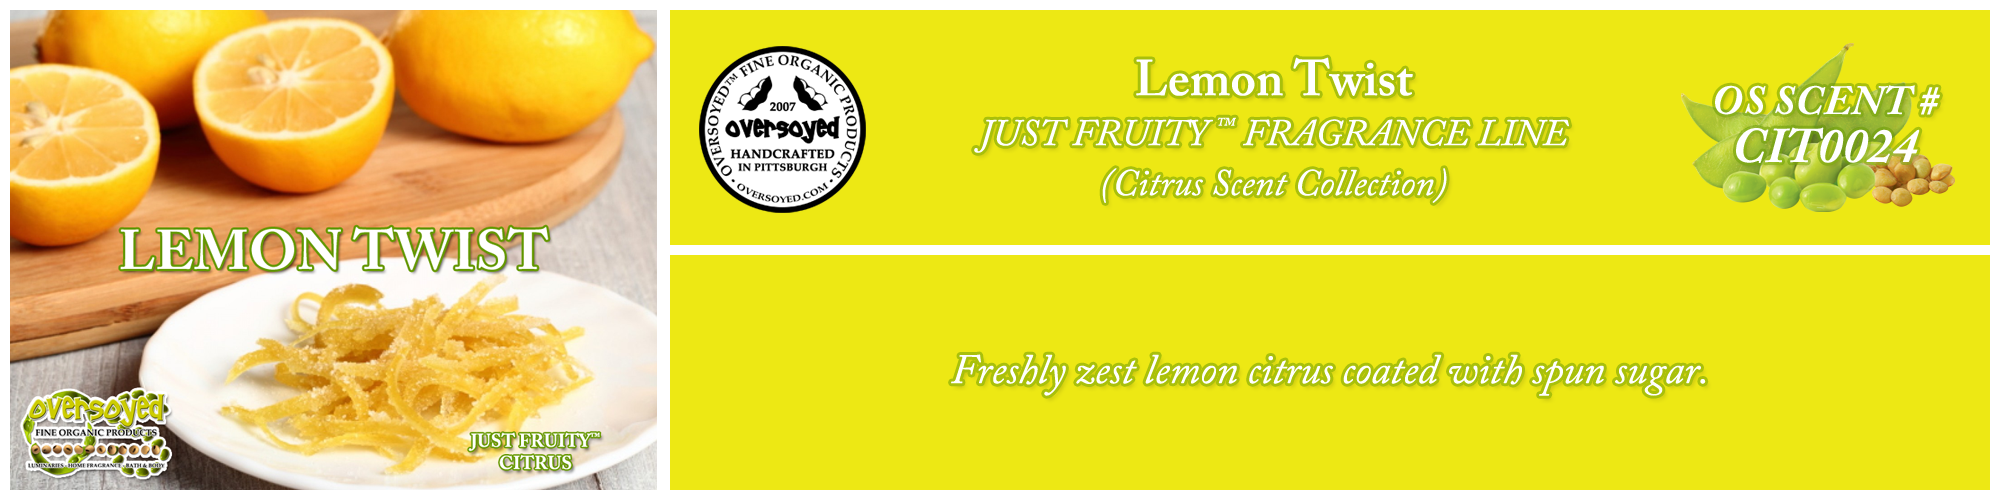 Lemon Twist Handcrafted Products Collection